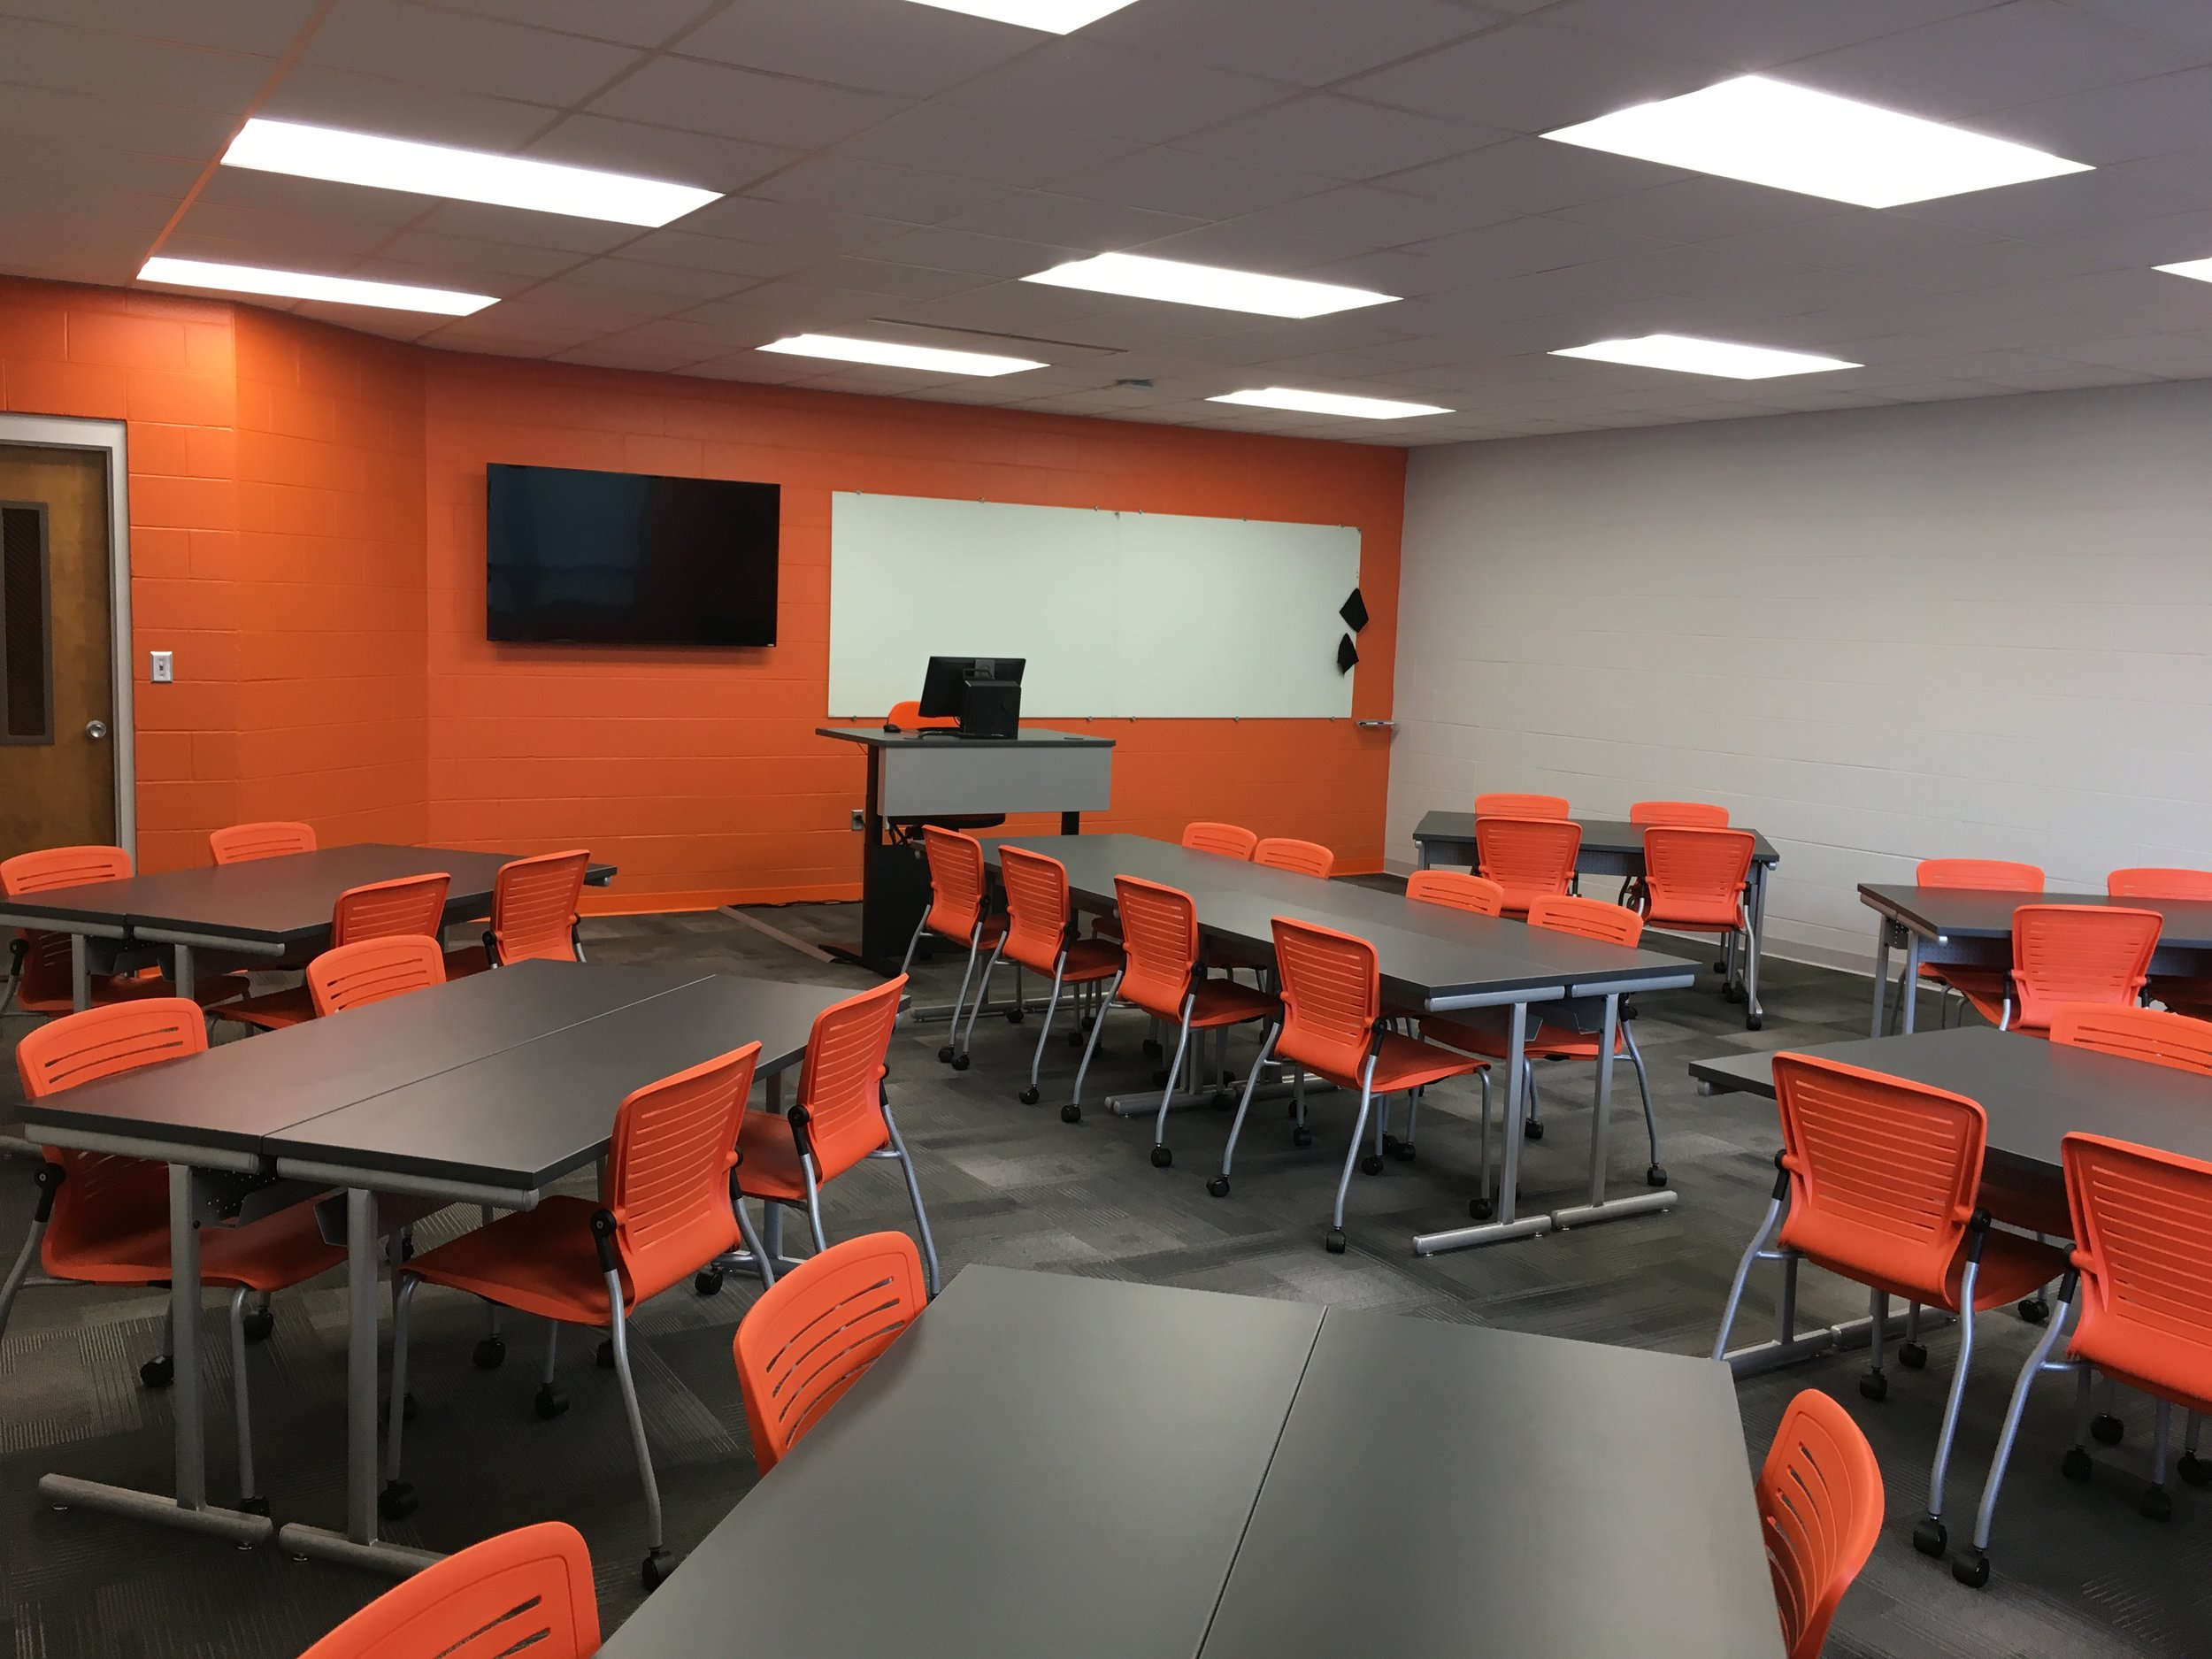 Jacksonville State University - Active Learning Table Install Pic 22.JPG